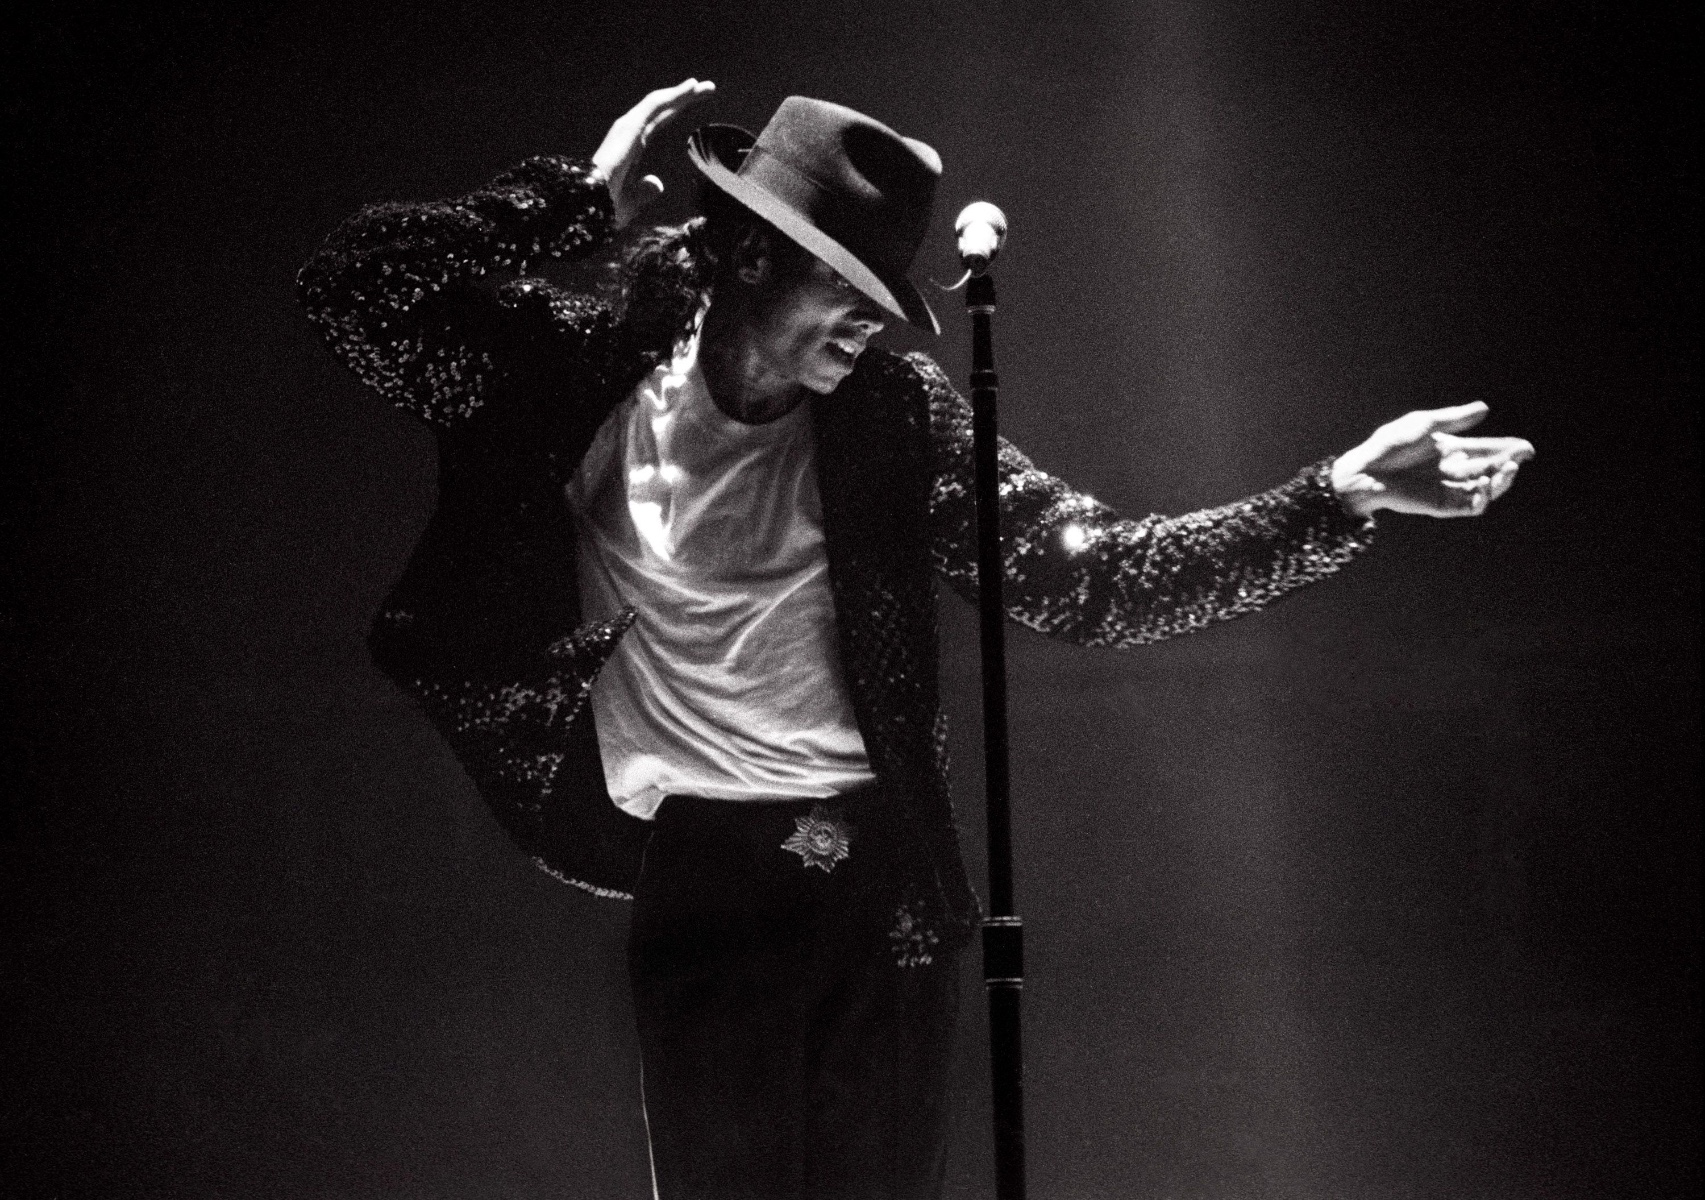 michael-jackson-file-photos-by-kevin-mazur-88688332-578669095f9b5831b5f03220-af064b.jpg